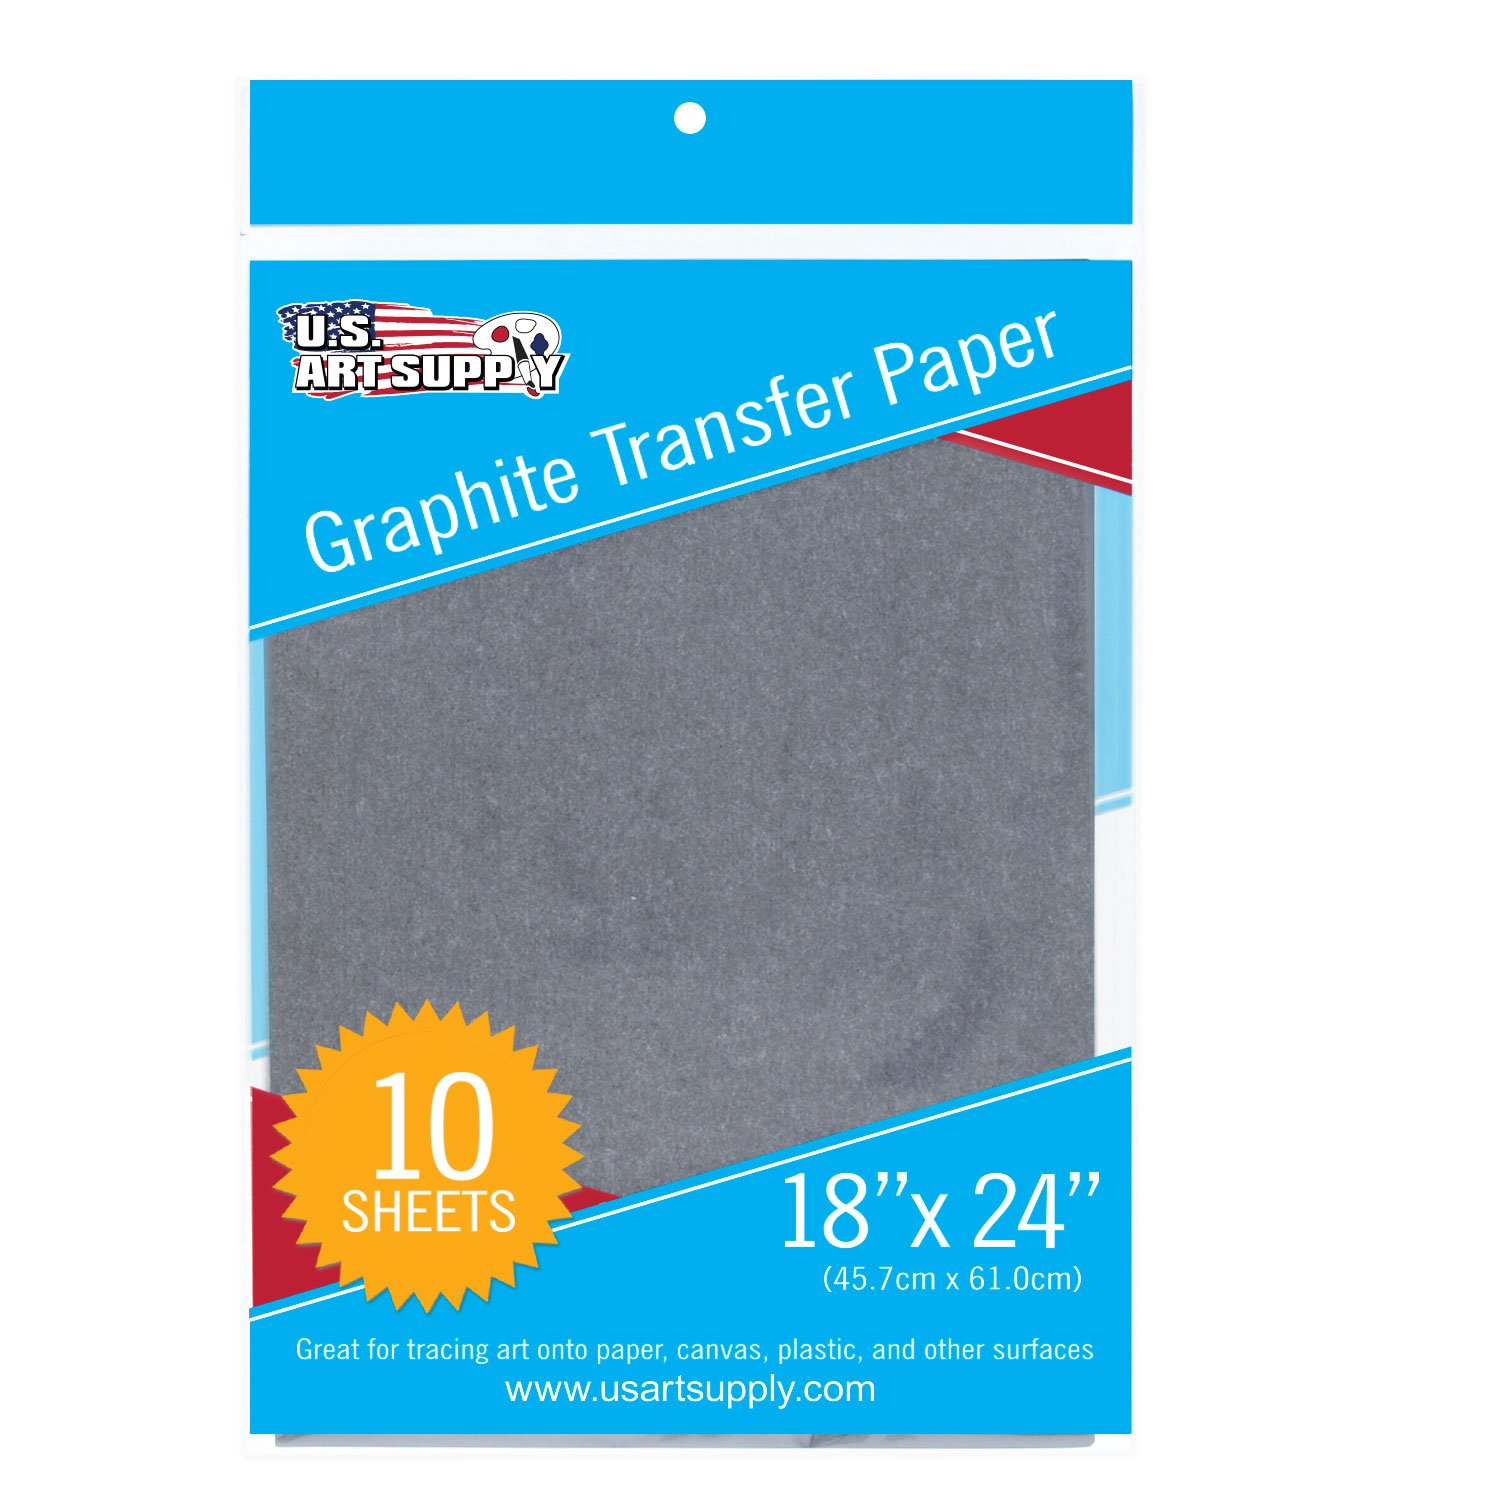 U.S. Art Supply Graphite Carbon Transfer Paper 18 x 24 - 10 Sheets - Black Tracing Paper for all Art Surfaces US Art Supply GTP18X24-10